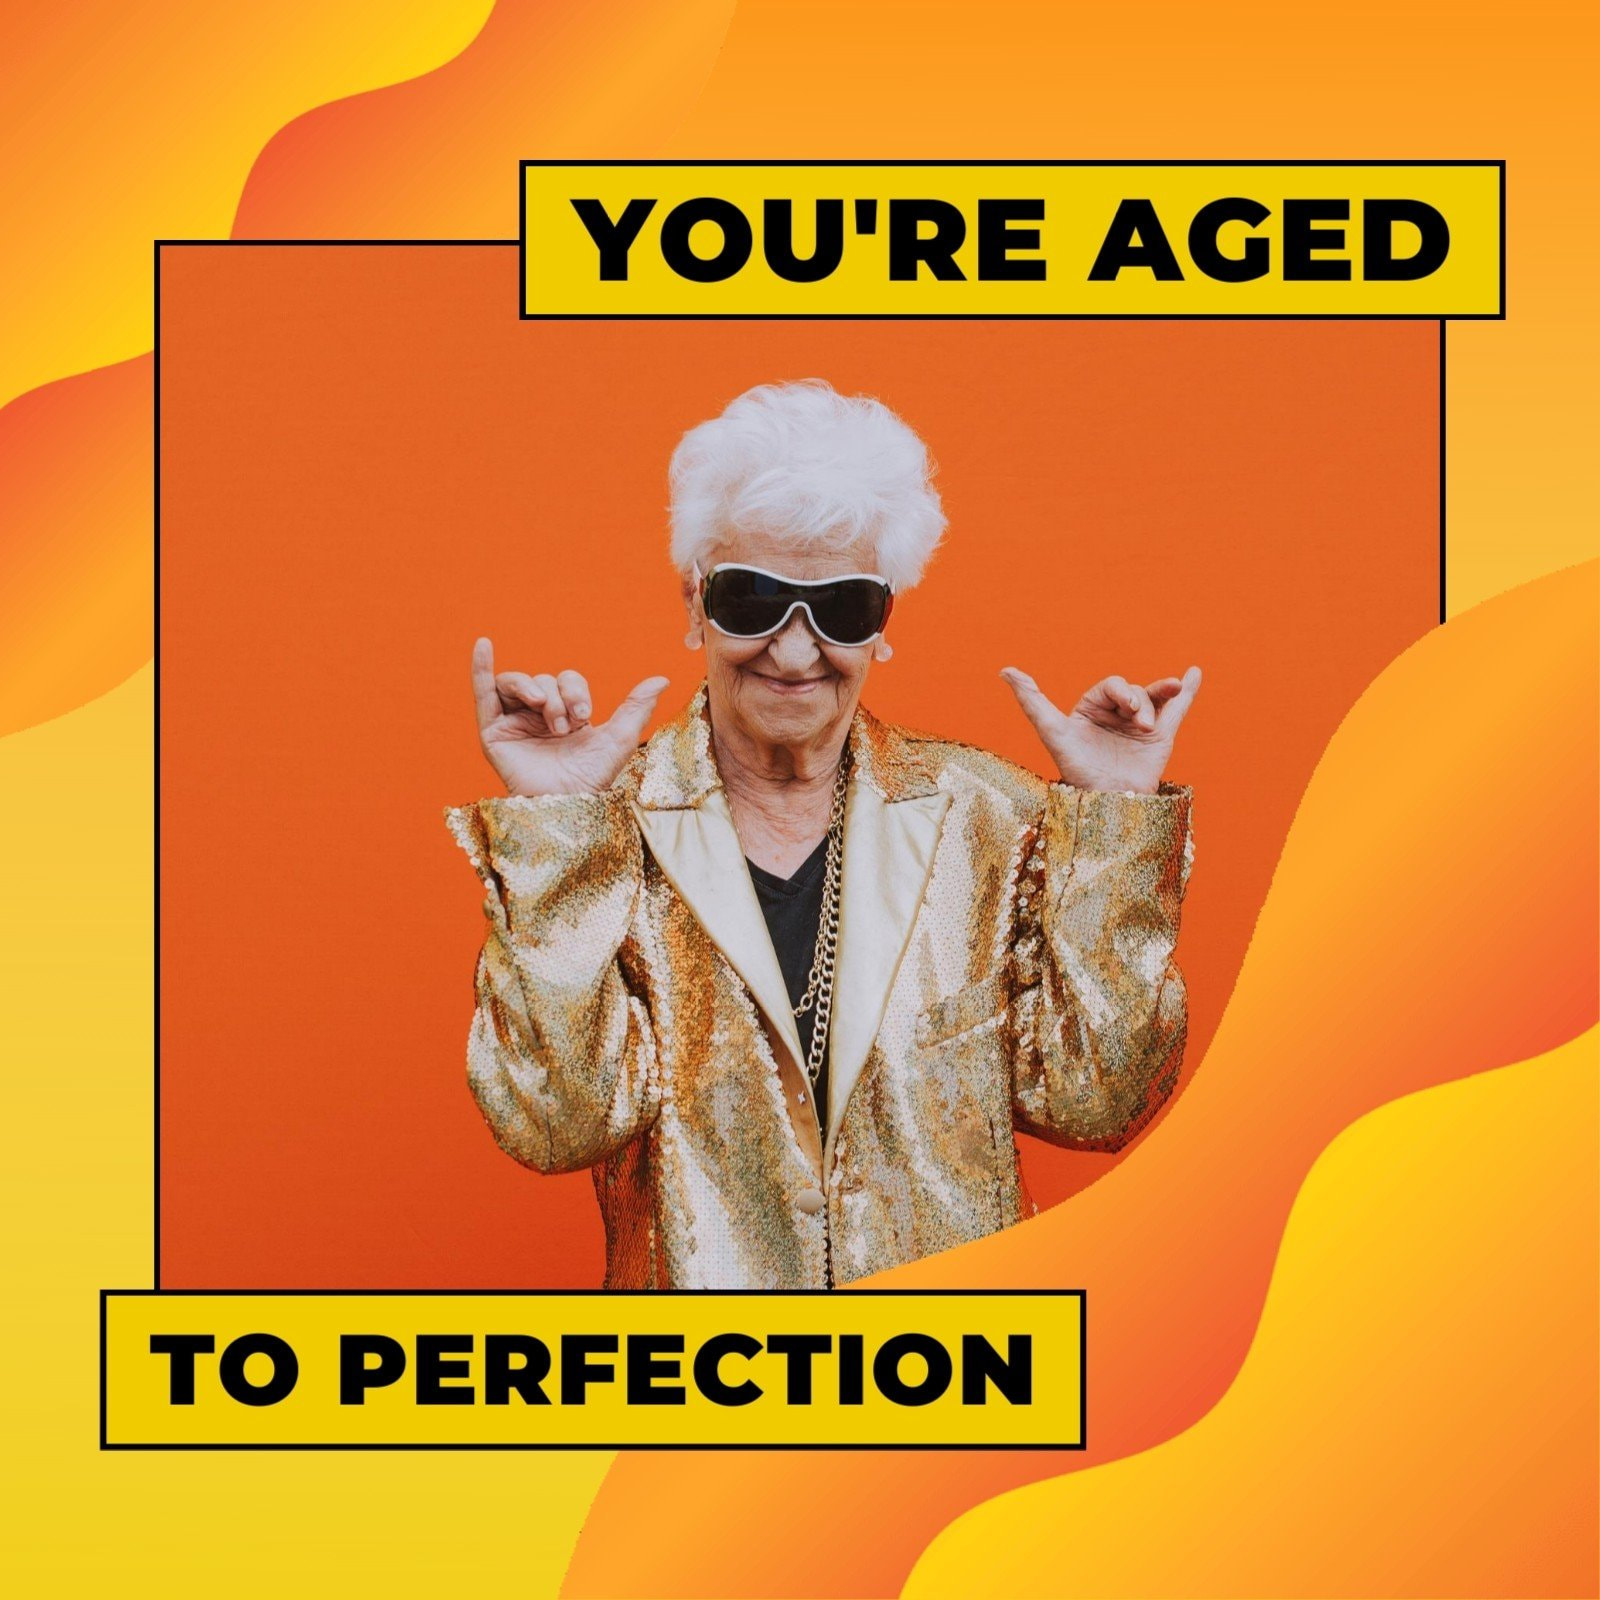 Orange Wave Old Woman Hip & Vibrant General Greeting Animated Birthday Social Media Graphic